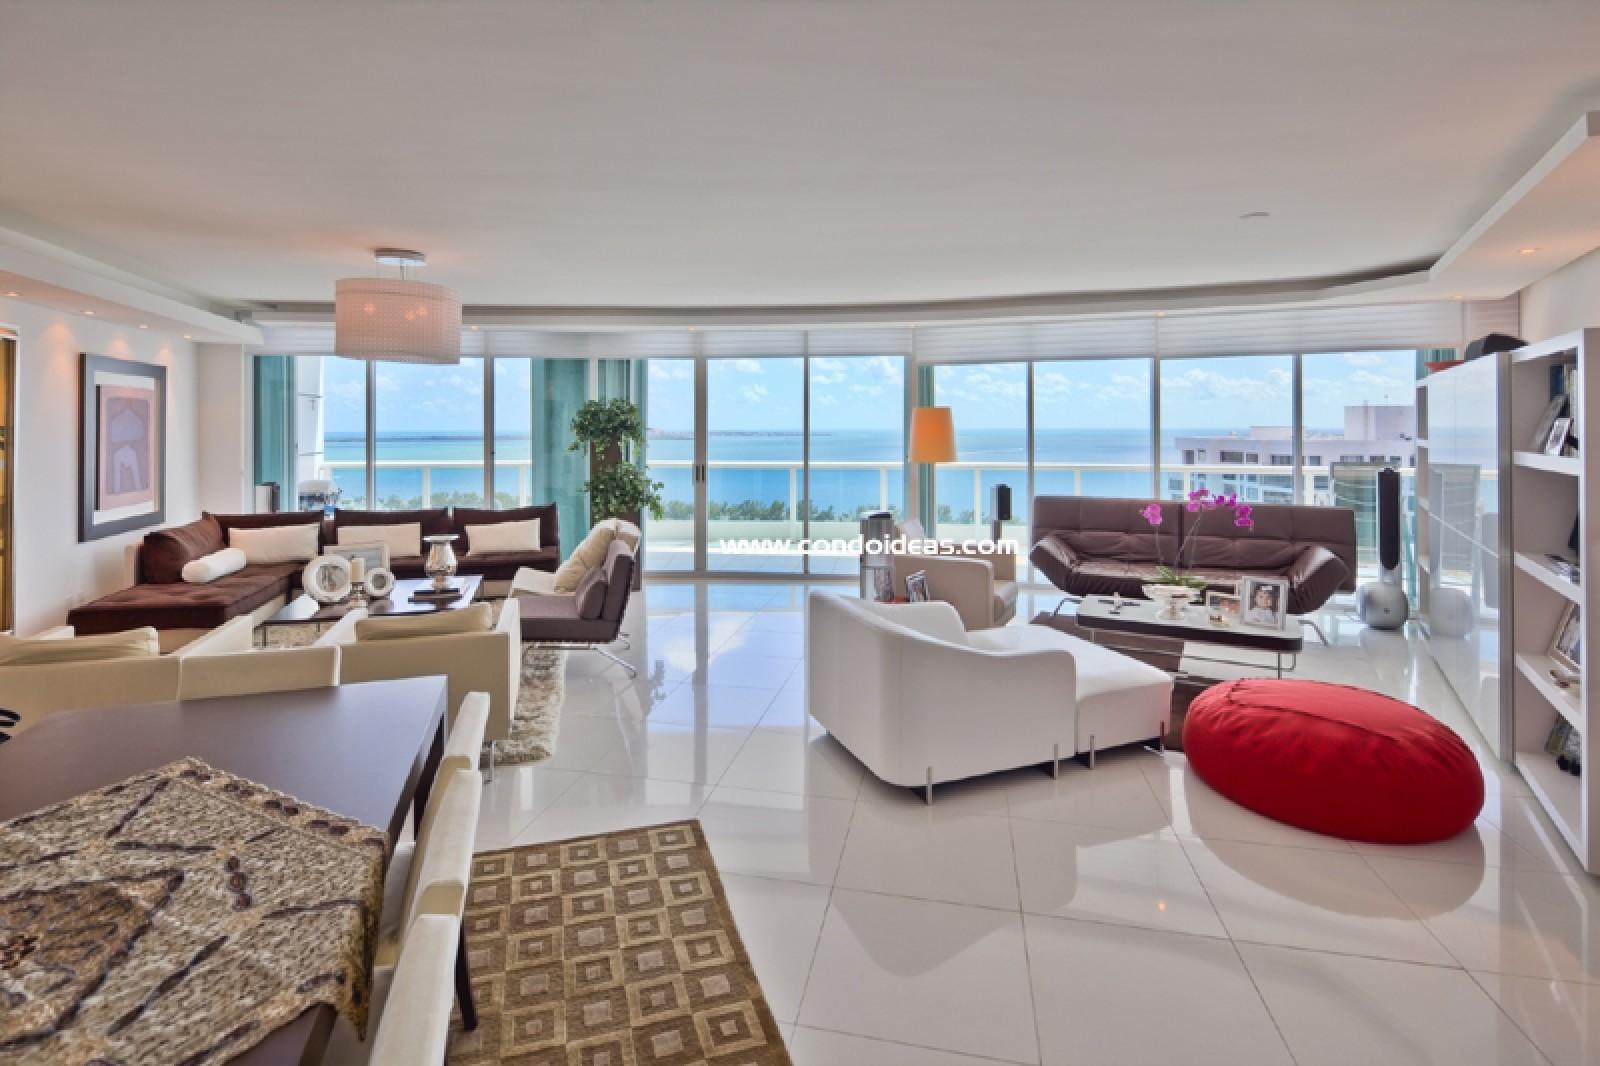 Bristol Tower Condo Extra Luxury Condominium Brickell